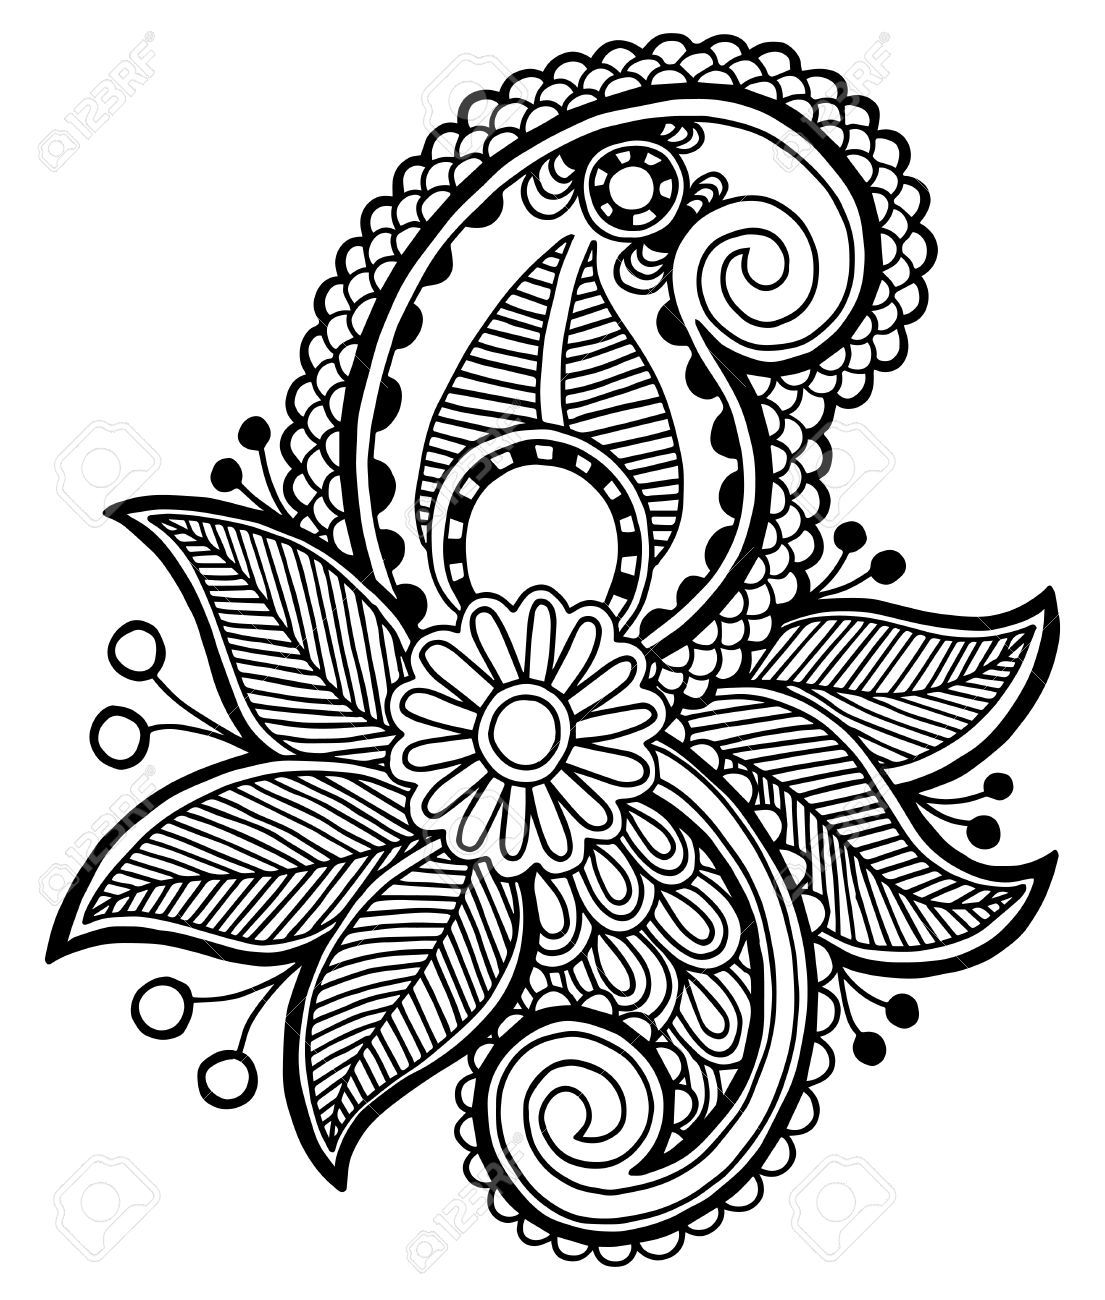 coloring pages line art designs - photo#15